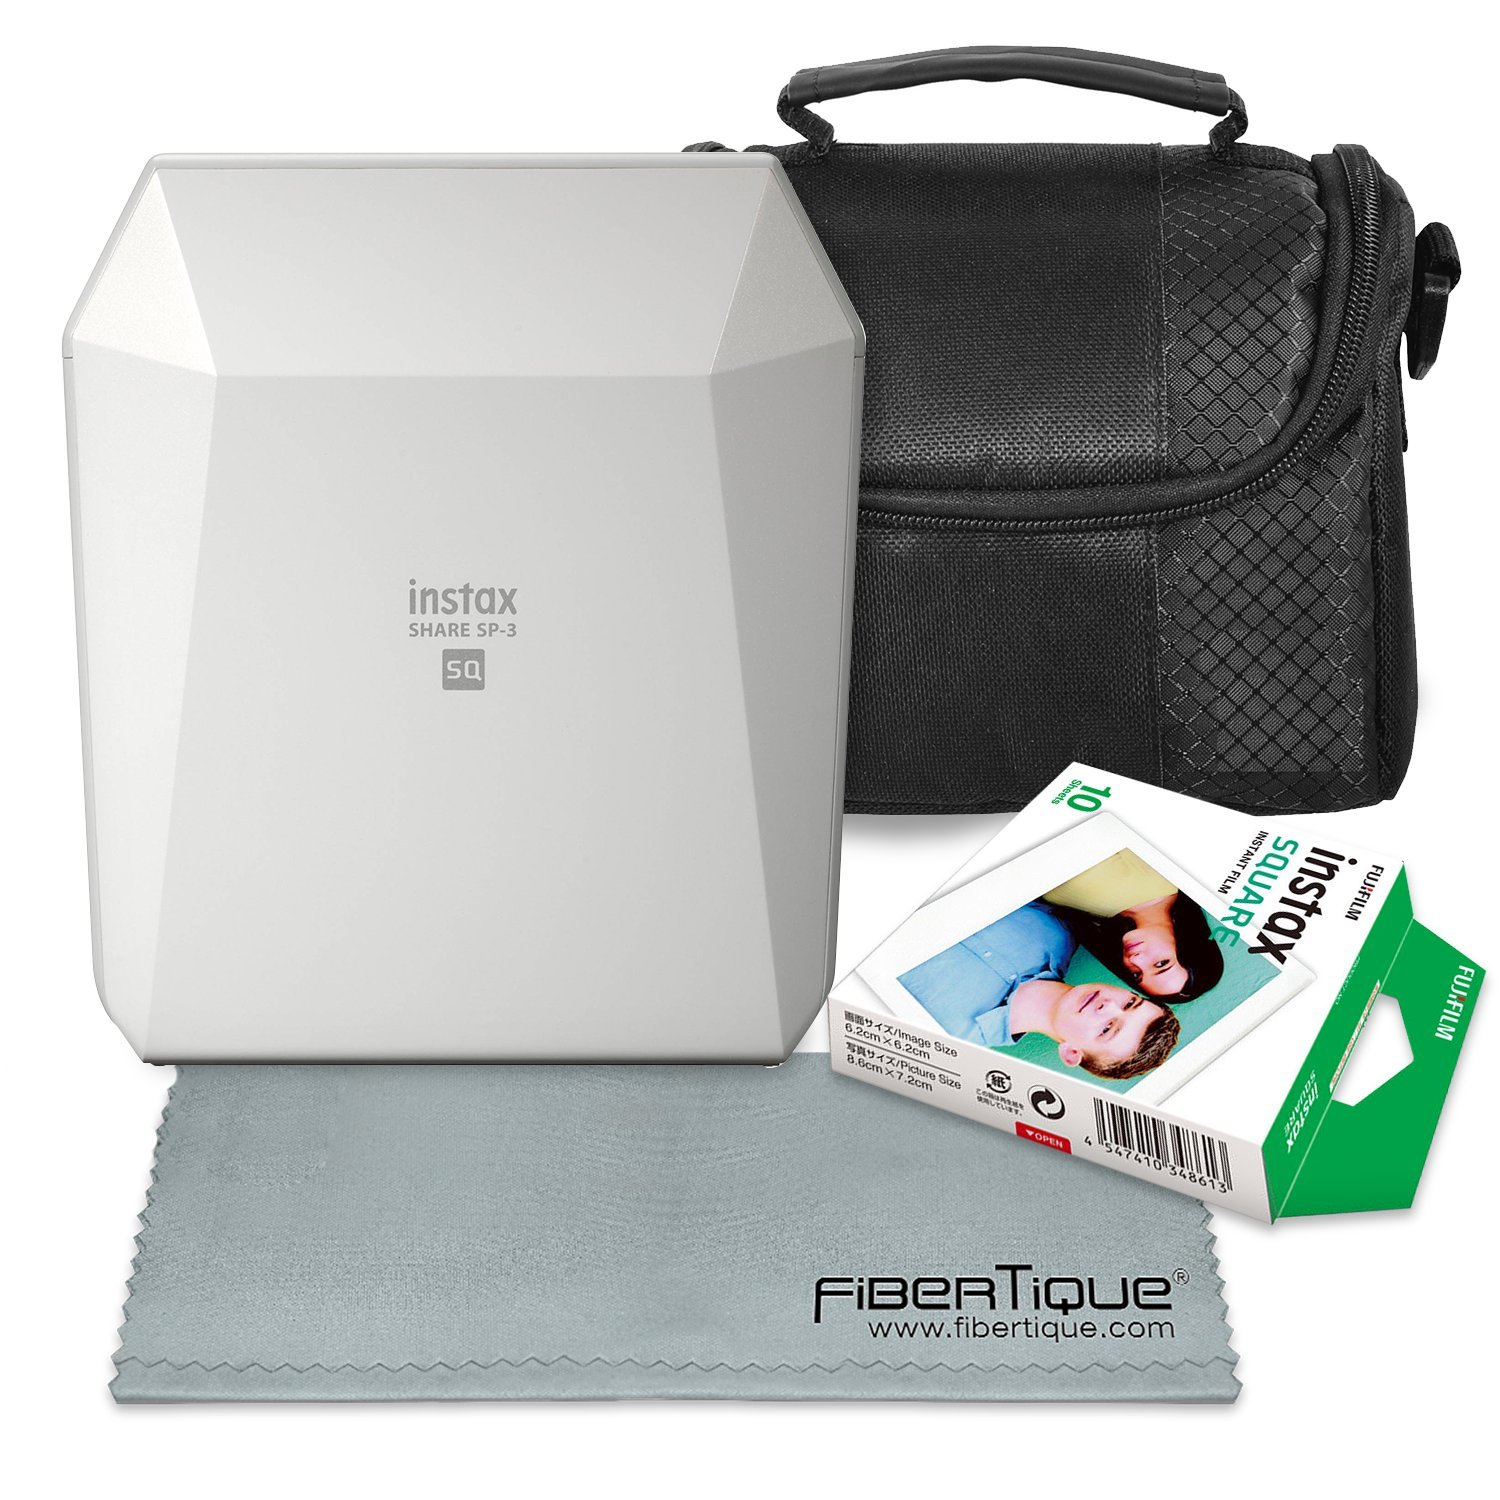 Fujifilm Instax SHARE Smartphone Printer SP-3 (White) with Instant Film, Deluxe Camera Case, and FiberTique Cloth